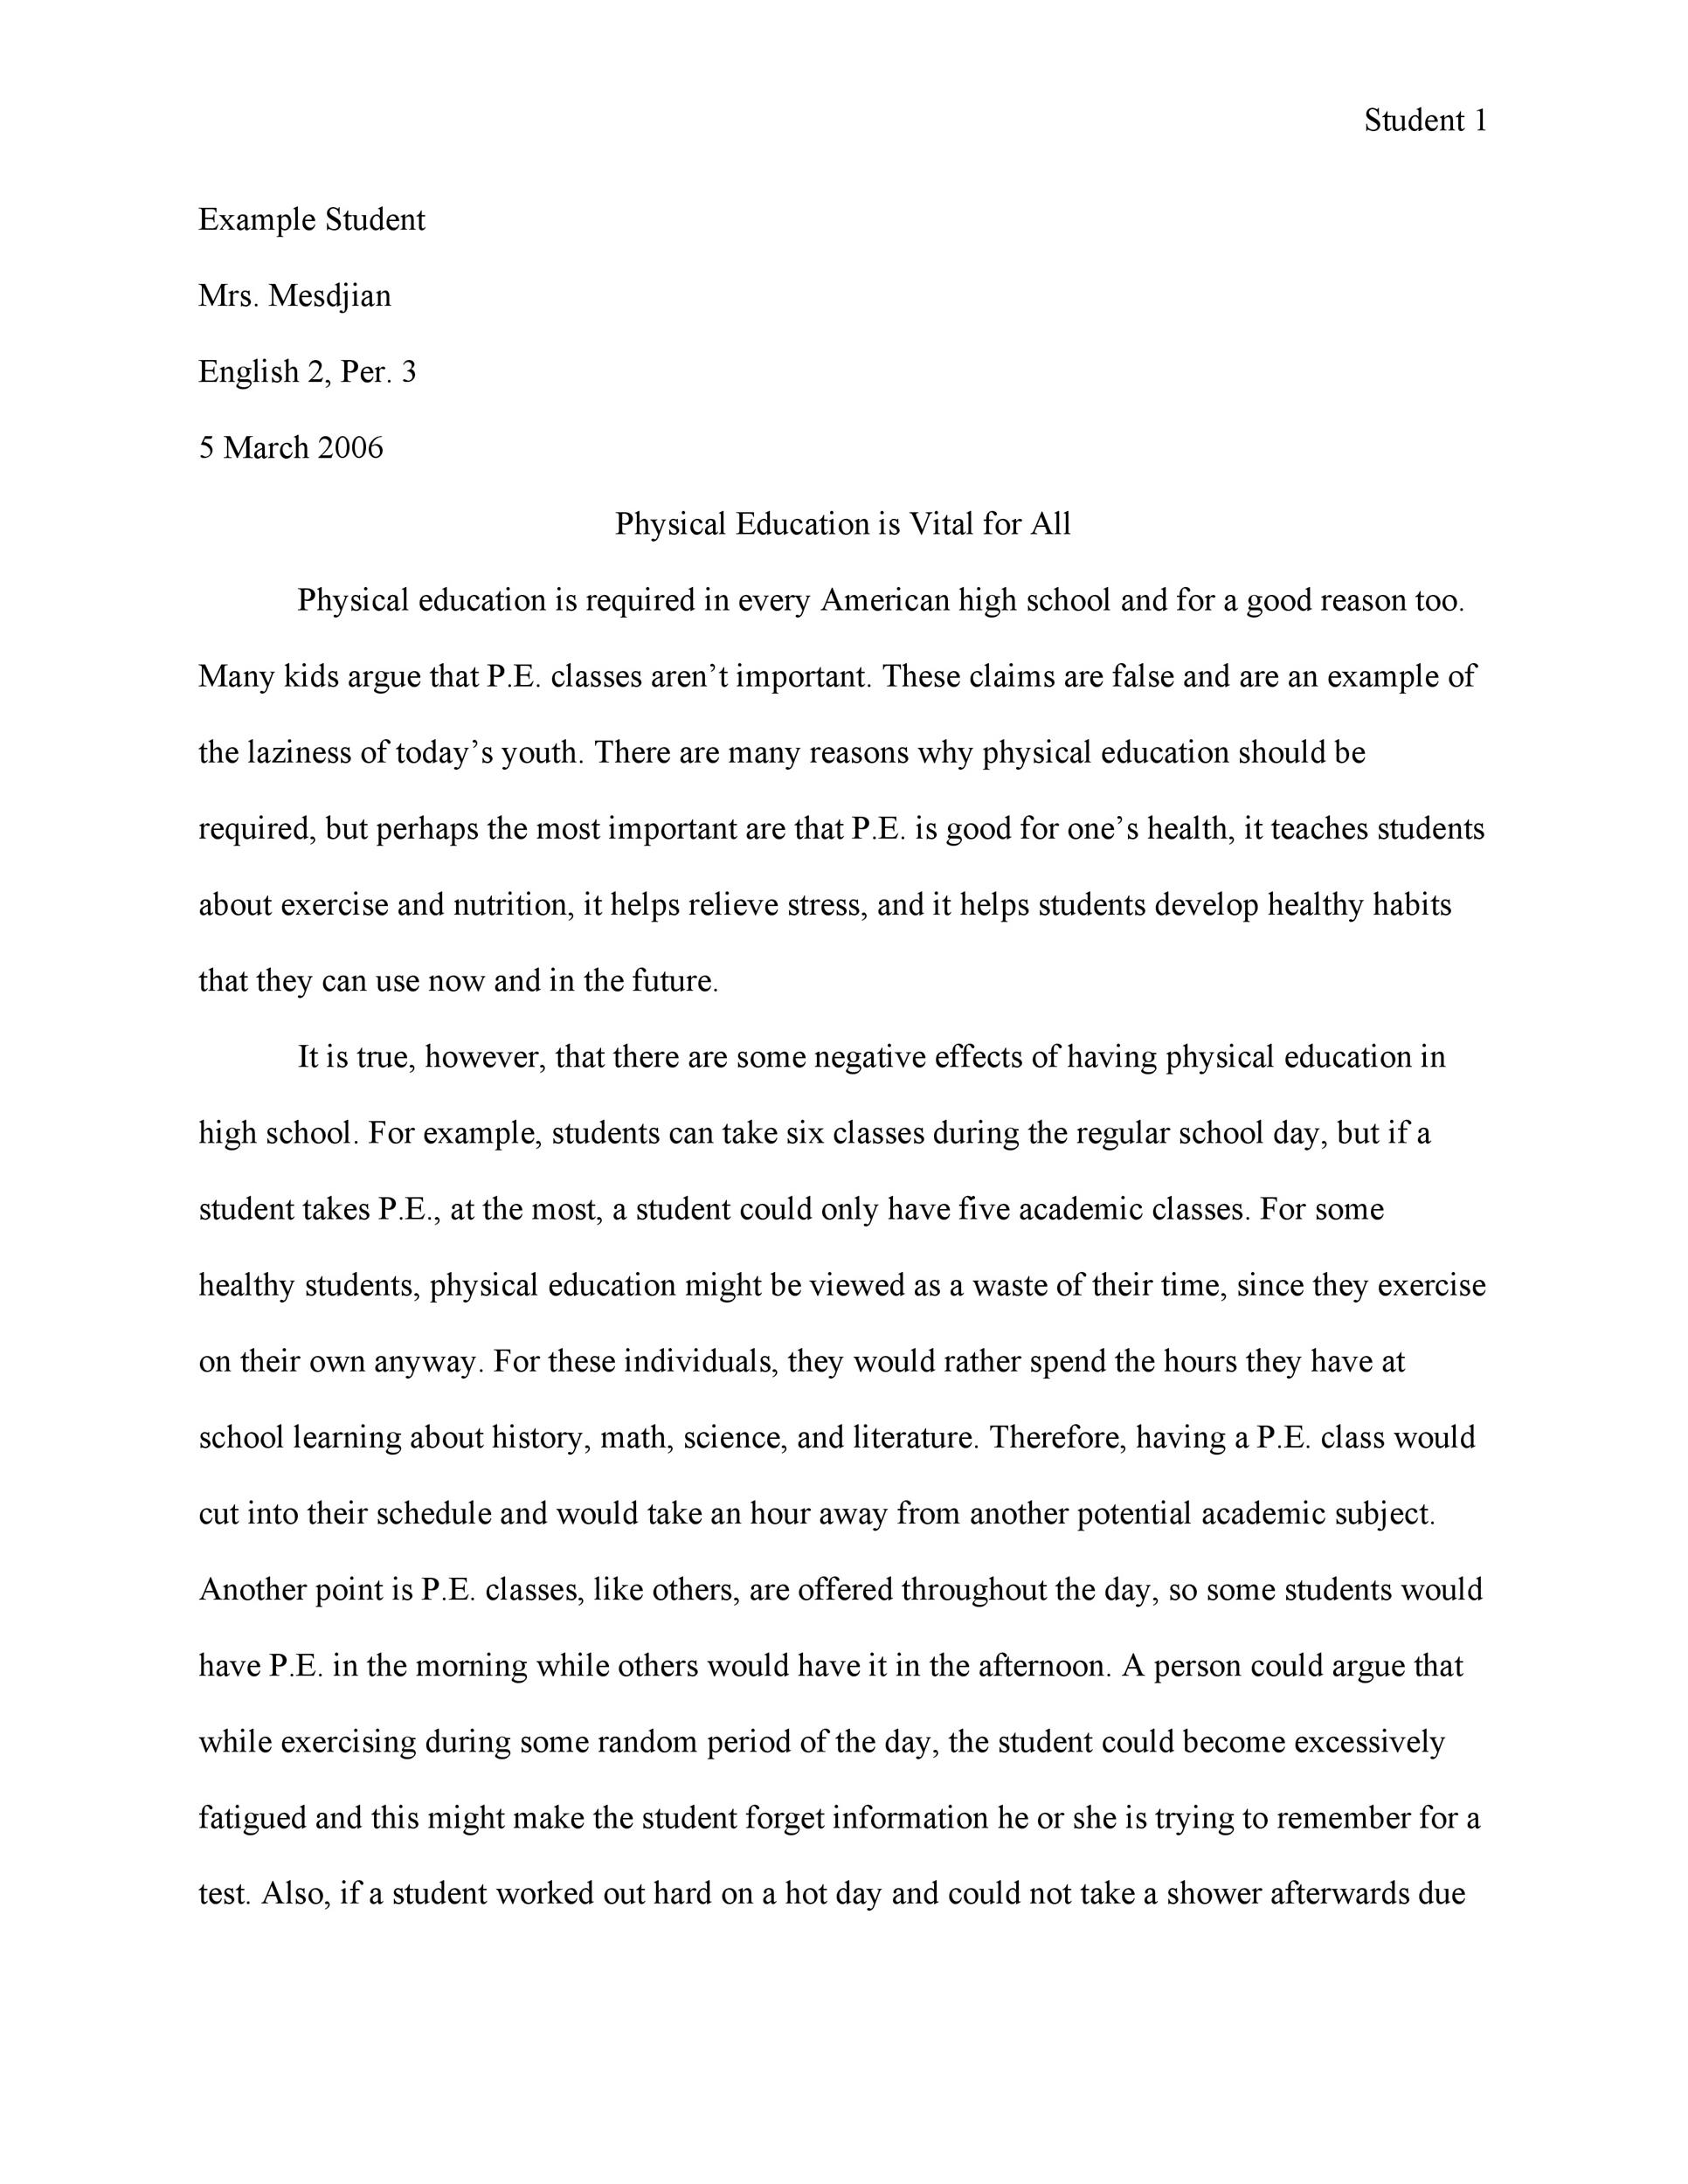 Example Of An Essay With A Thesis Statement  Persuasive Essay Papers also How To Start A Science Essay  Free Persuasive Essay Examples Best Topics  Template Lab Thesis In Essay